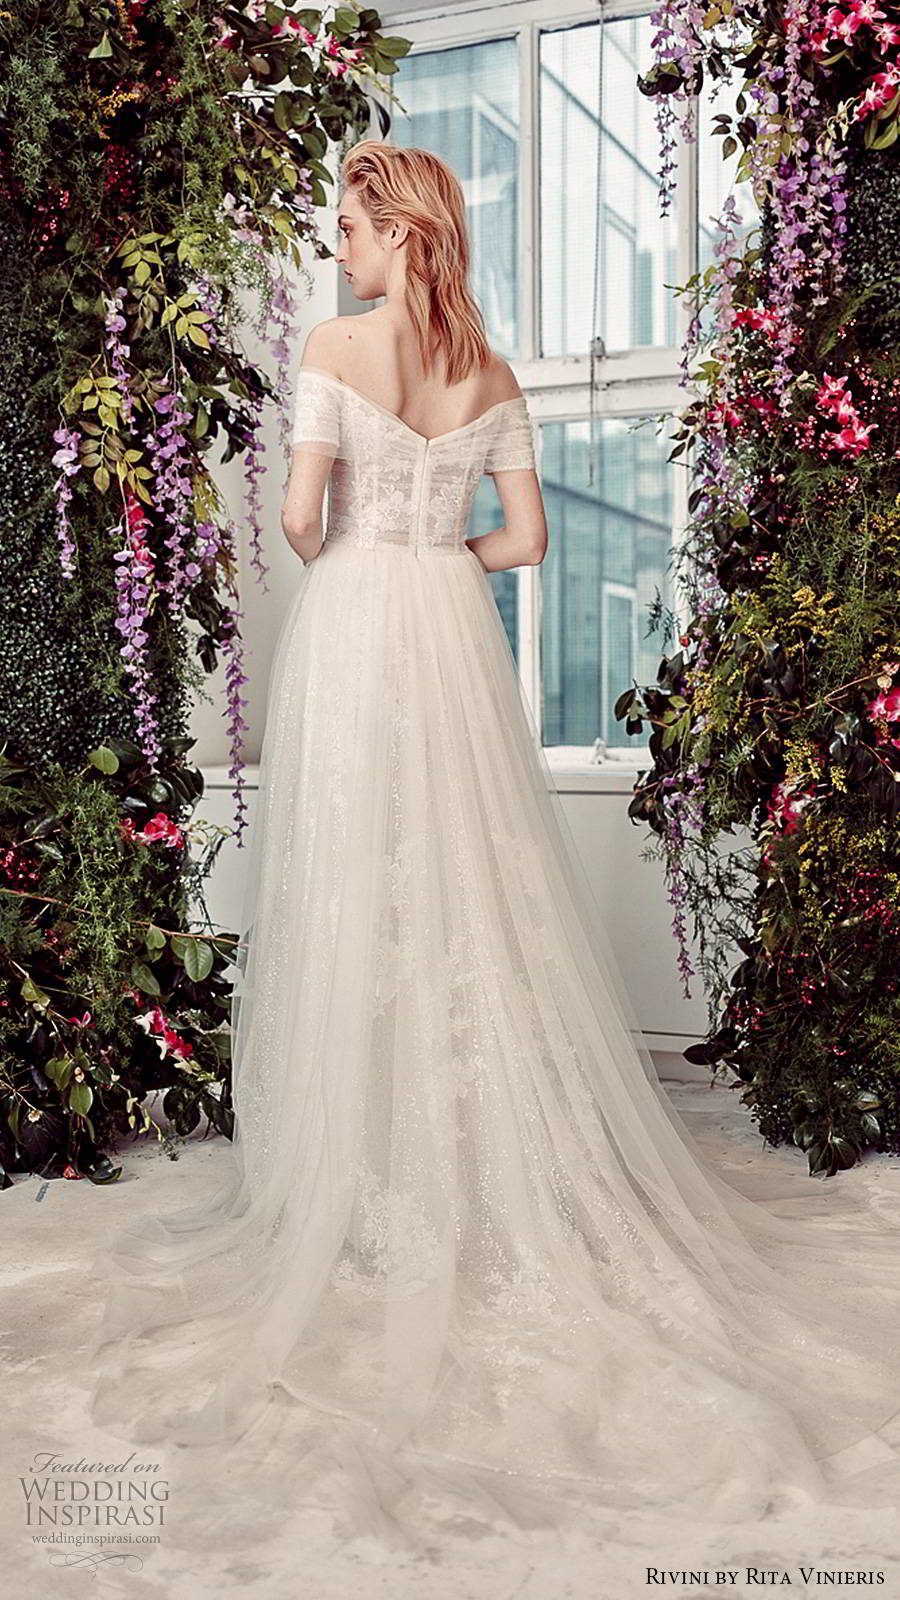 rivini by rita vinieris spring 2020 bridal off shoulder short sleeves semi sweetheart neckline fully embellished sheer overskirt romantic a line ball gown wedding dress chapel train (7) bv